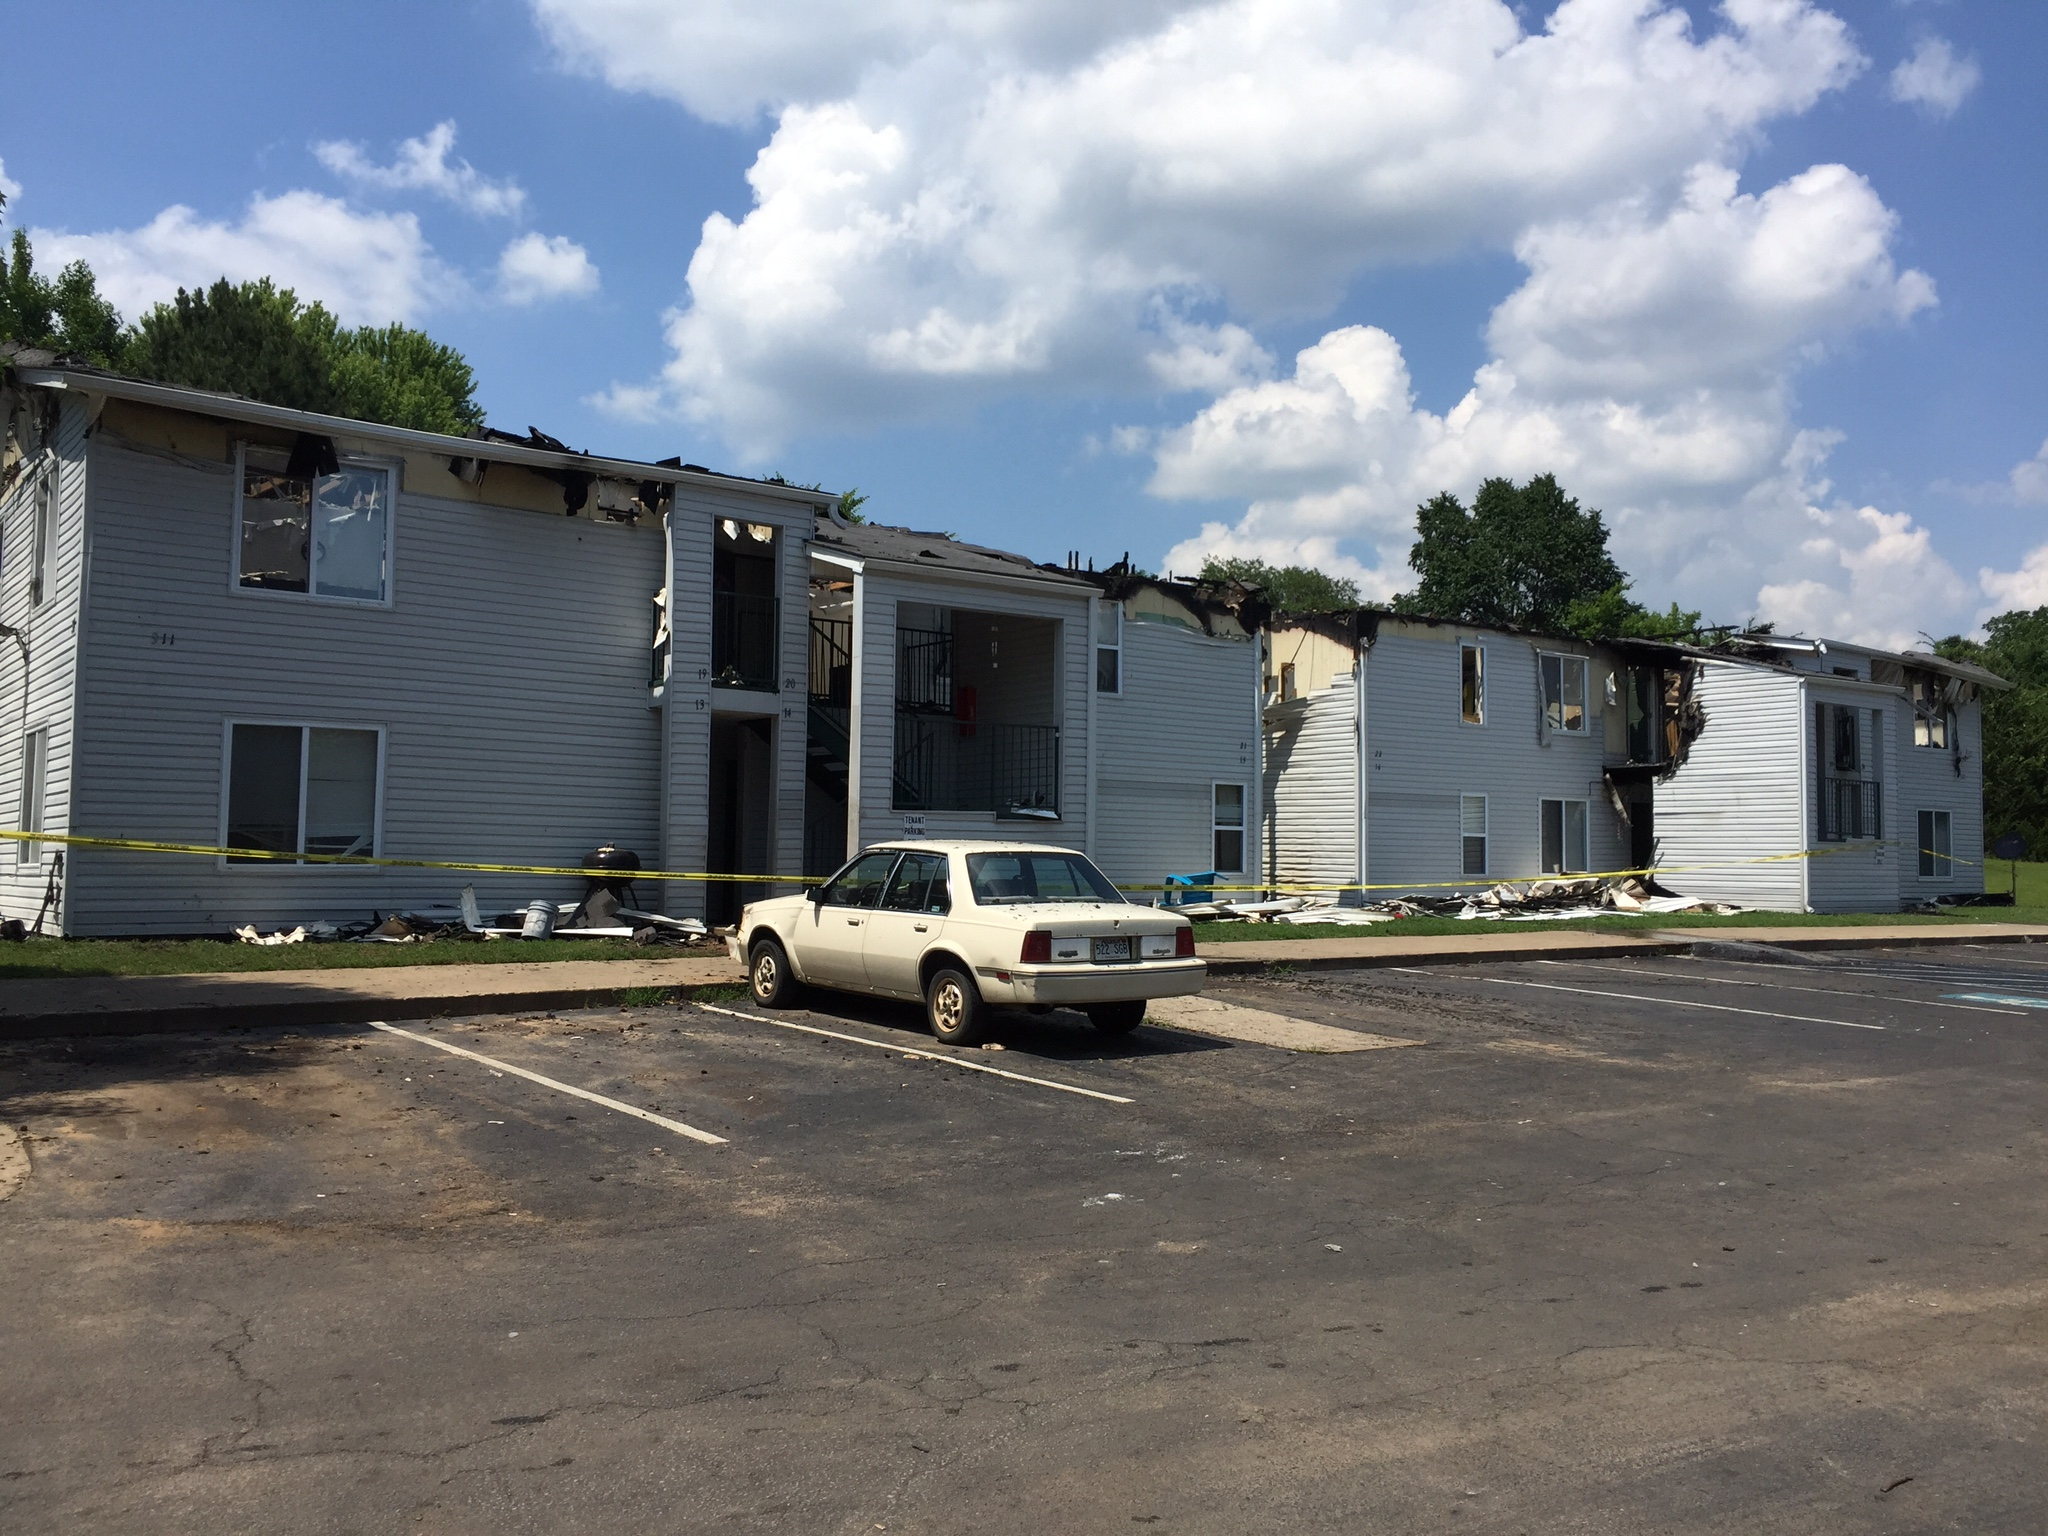 CRAWFORD COUNTY APARTMENT FIRE